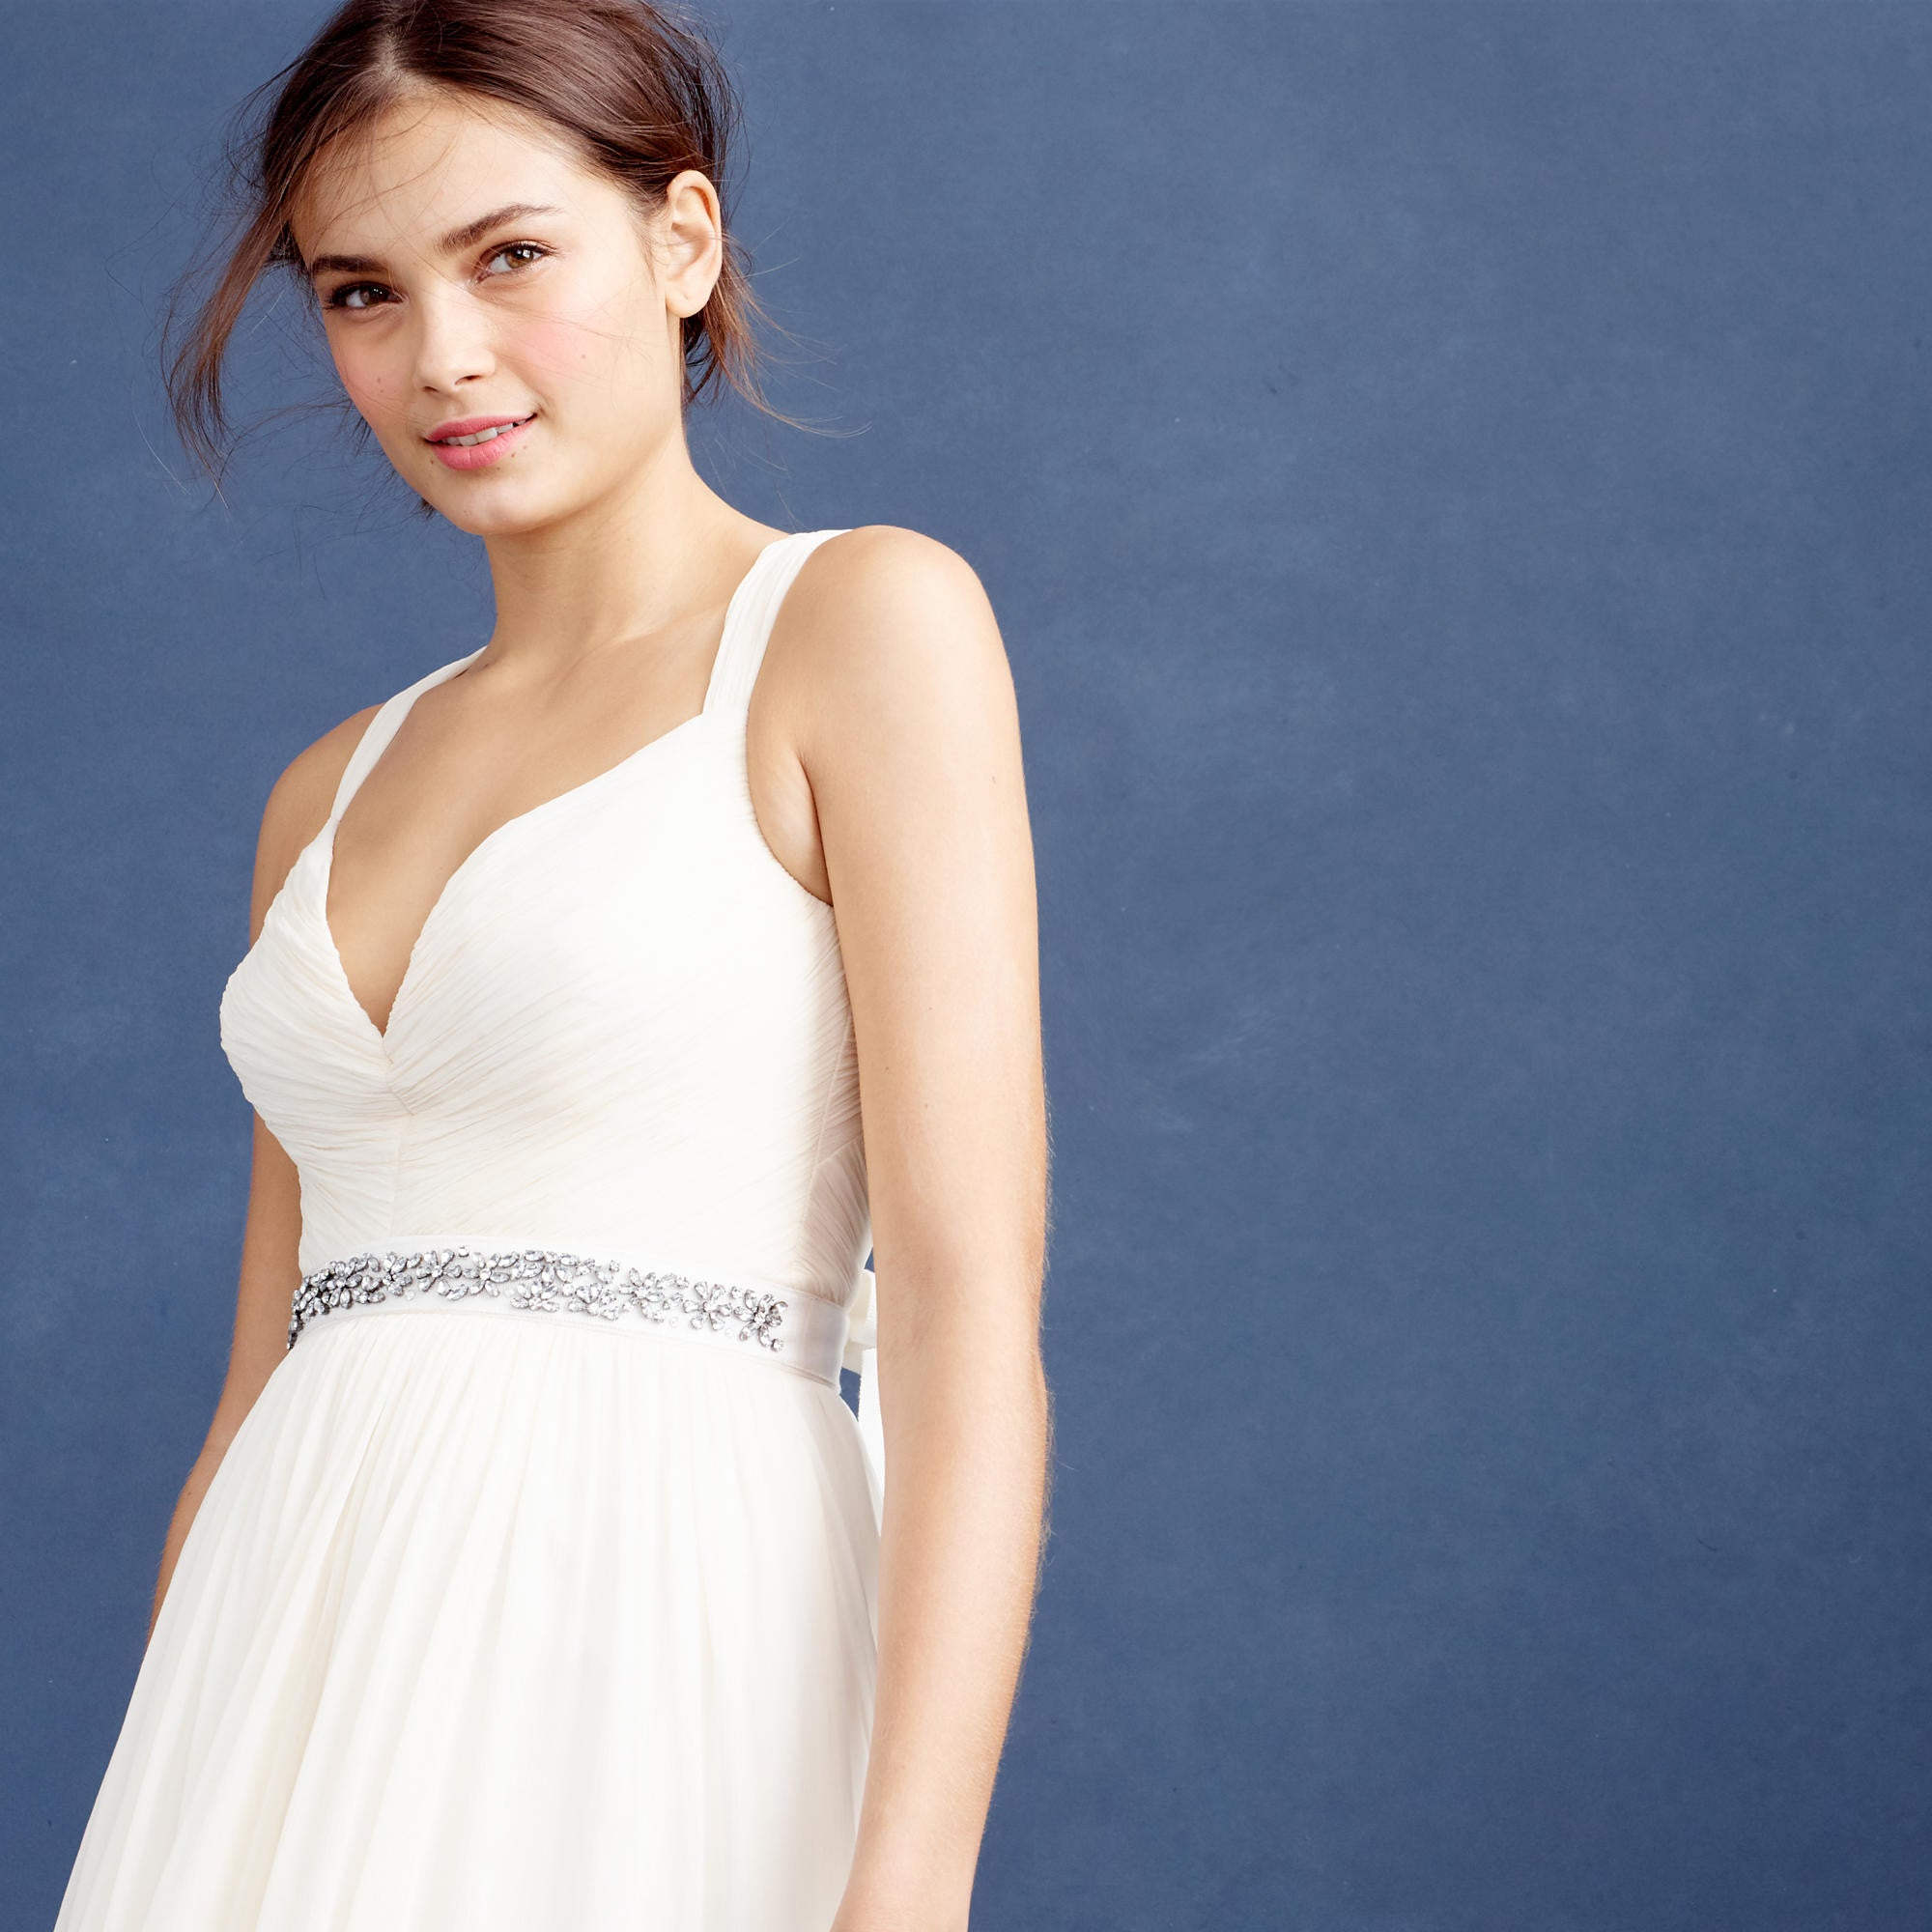 J. Crew Gigi Wedding Gown - Adinas Bridal